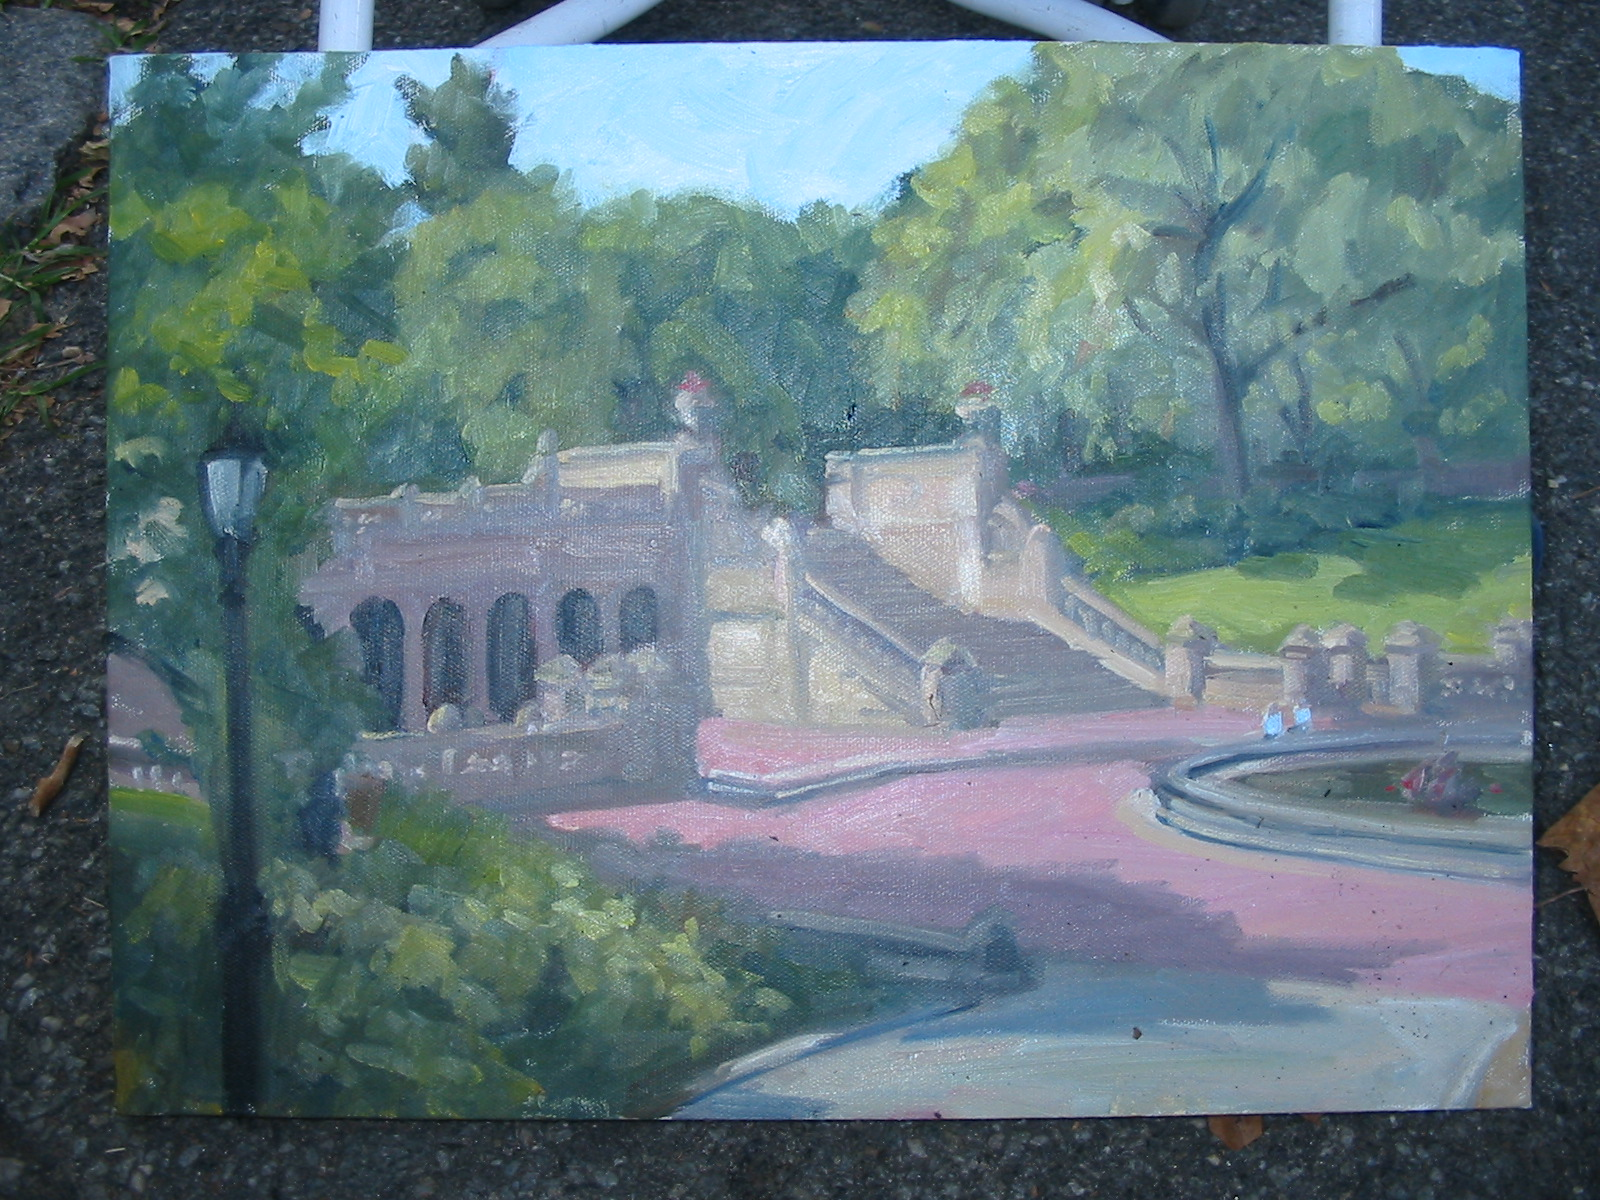 Morning at Bethesda Terrace, Central Park